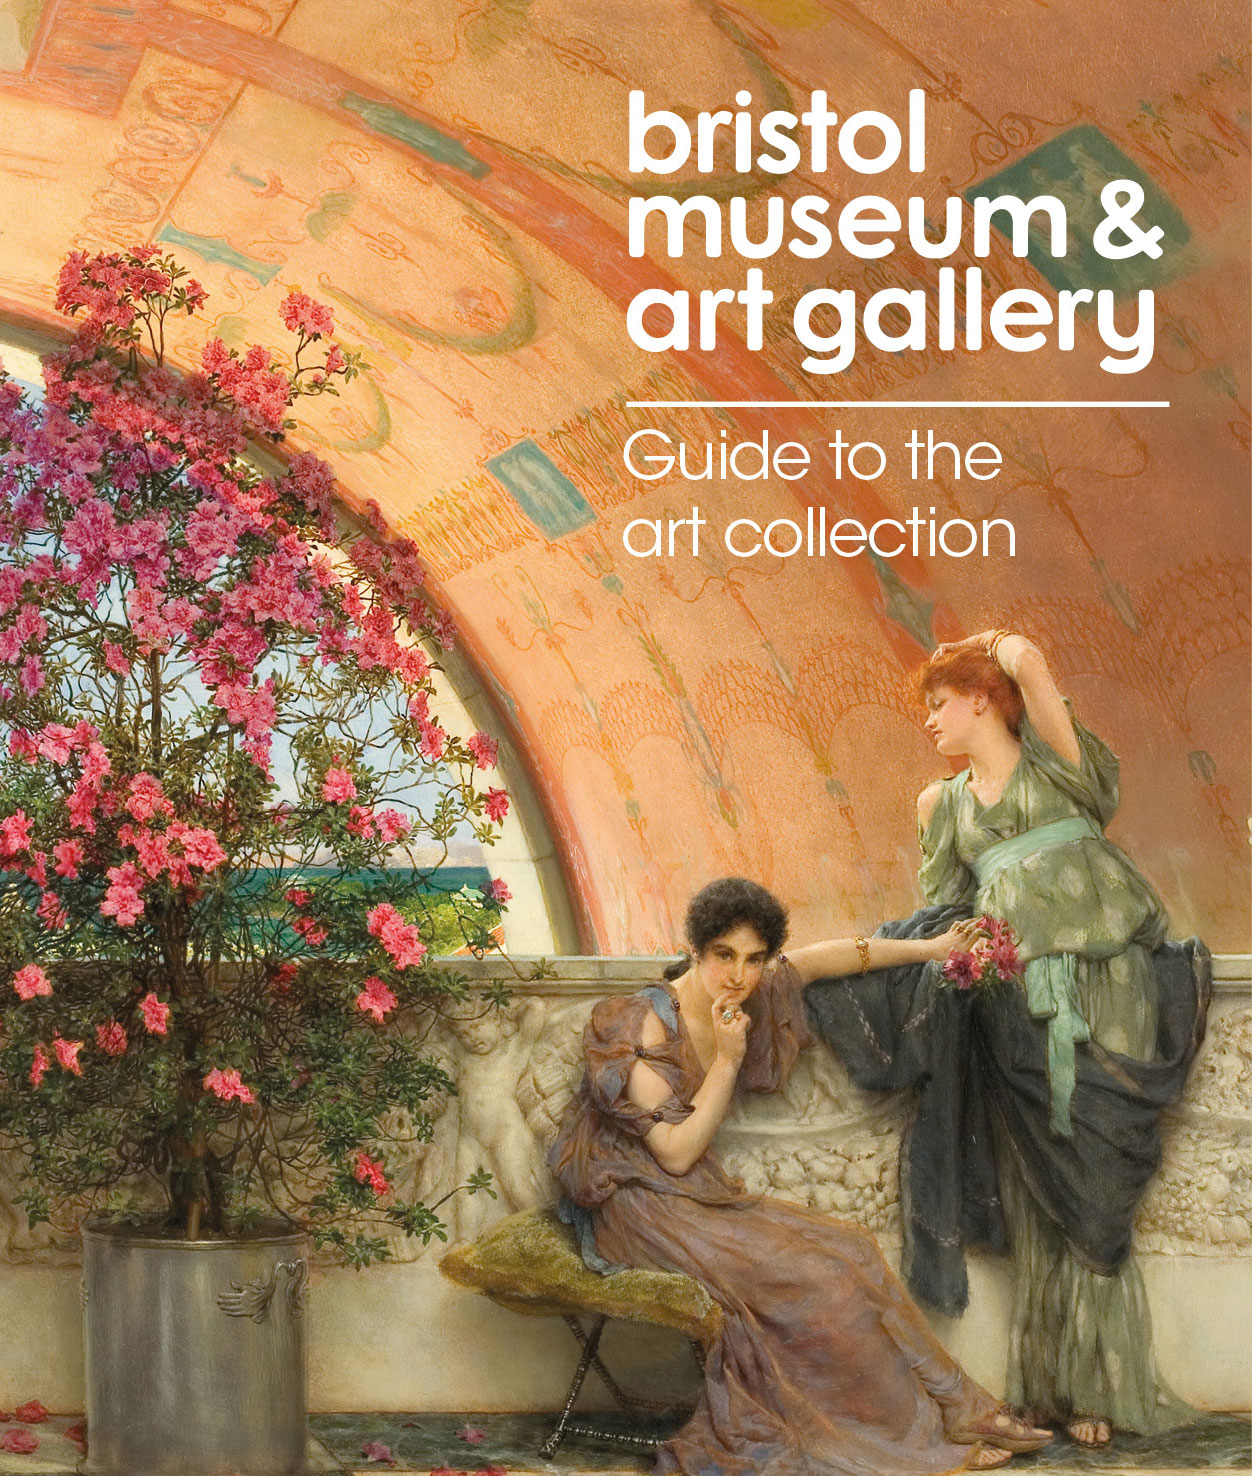 Bristol Museum & Art Gallery: Guide to the art collection